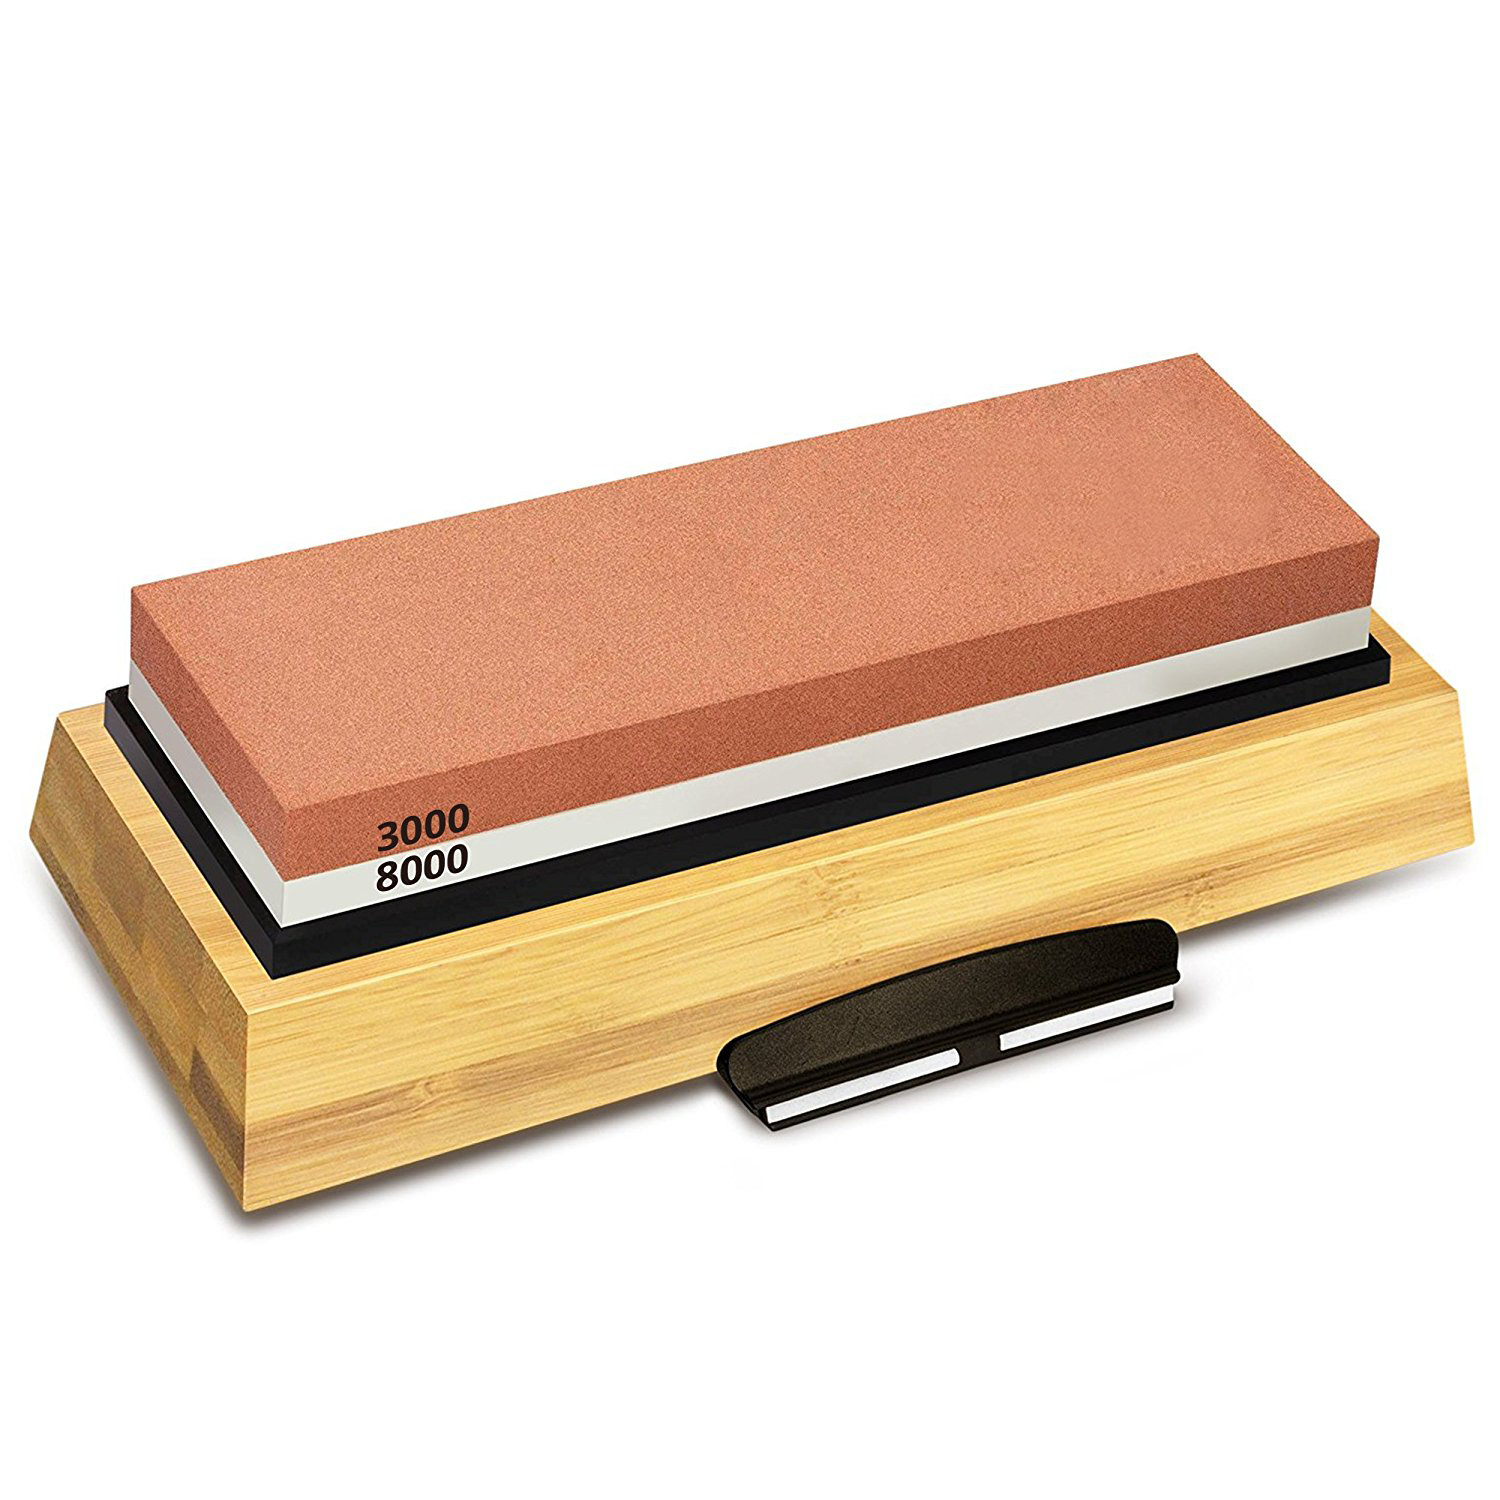 HOT-Sharpening Stone 3000 & 8000 Grit - Double Sided Whetstone Set For Knives With Non-Slip Bamboo Base and Free Angle Guide